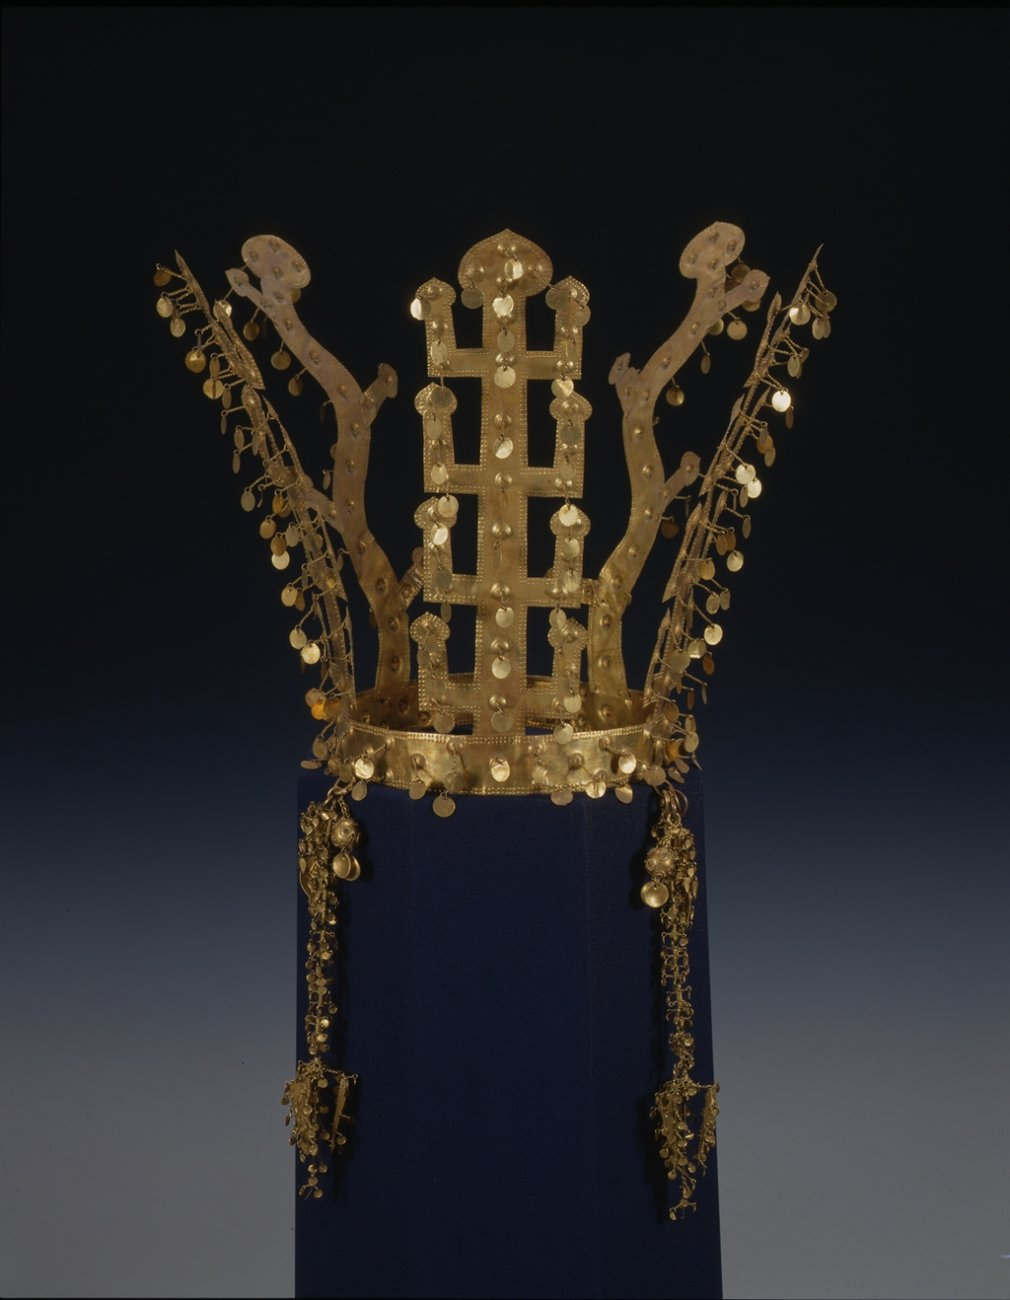 Silla_gold_crown.jpg